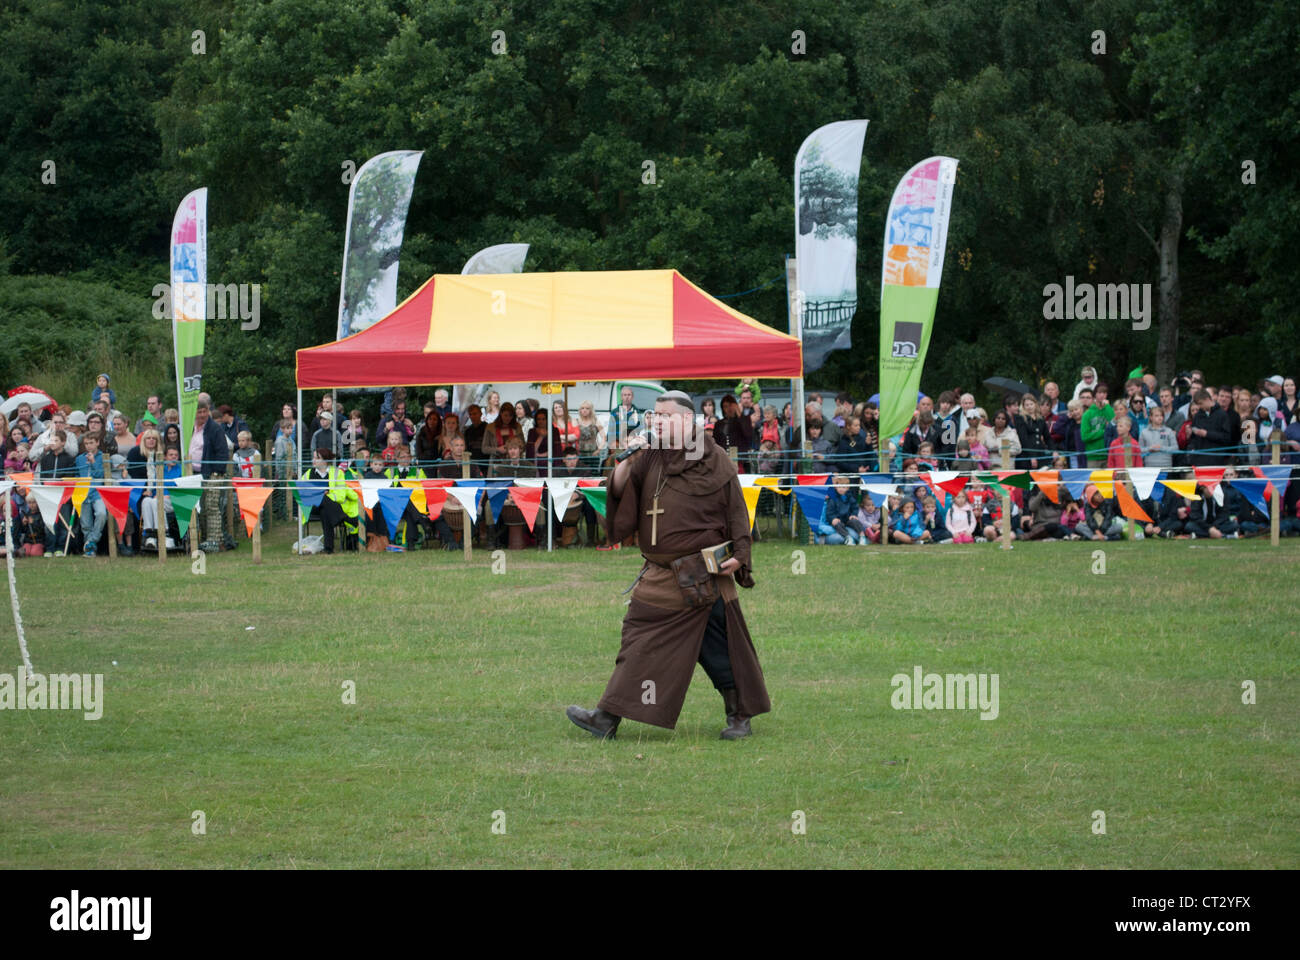 Man in medieval monk costume dressed as Friar Tuck at jousting tournament with crowd and pavilion background - Stock Image